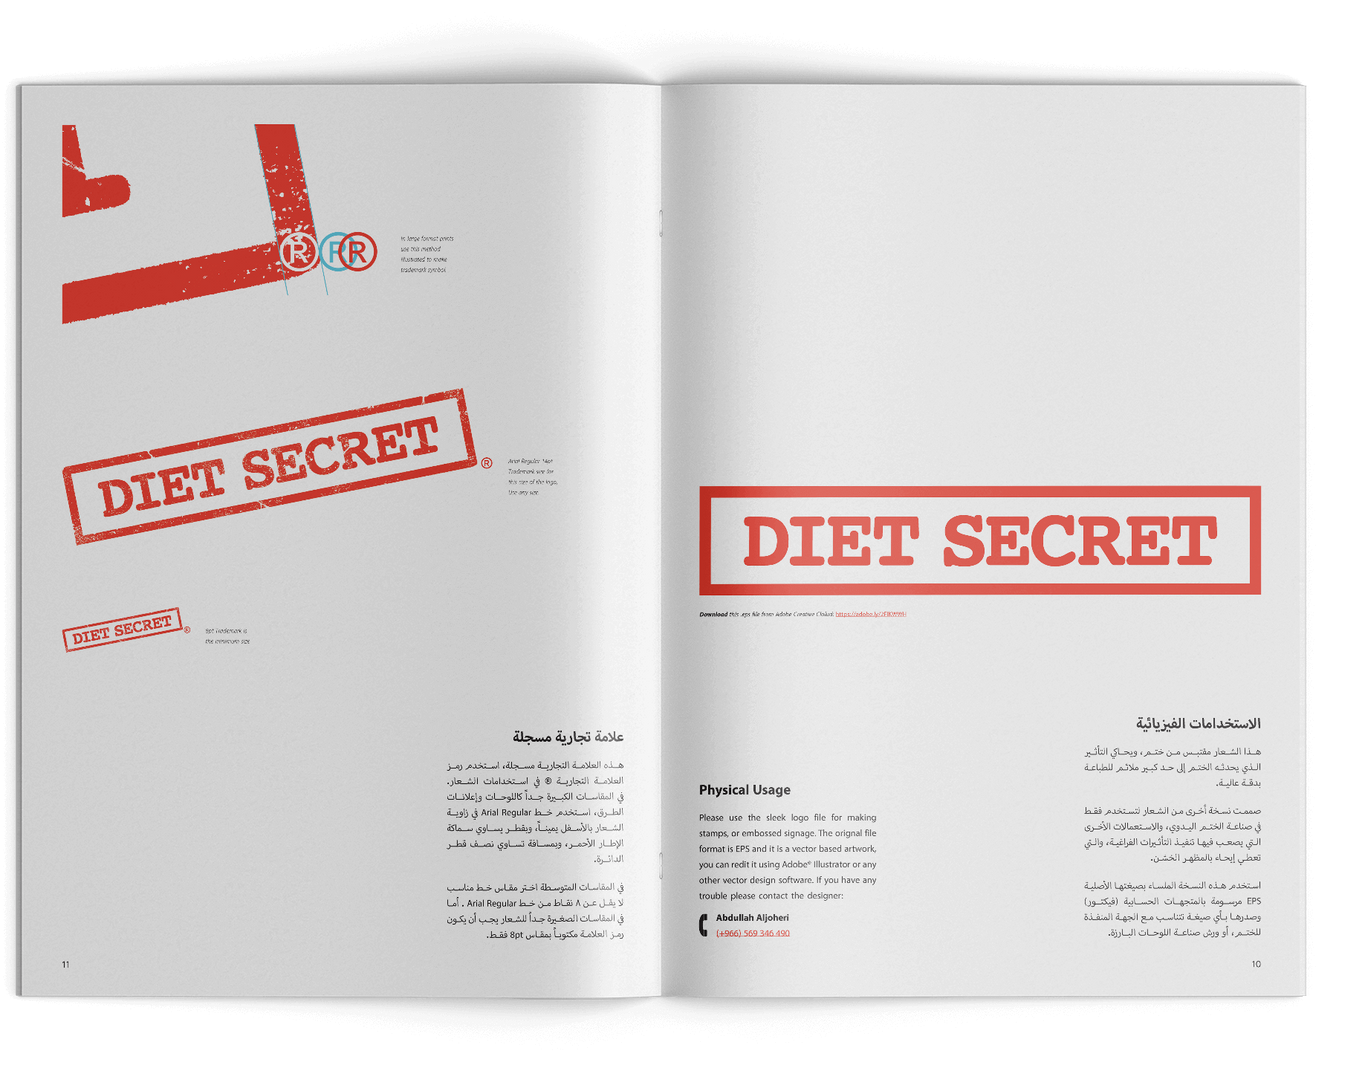 DietSecret ® logo usage guideline